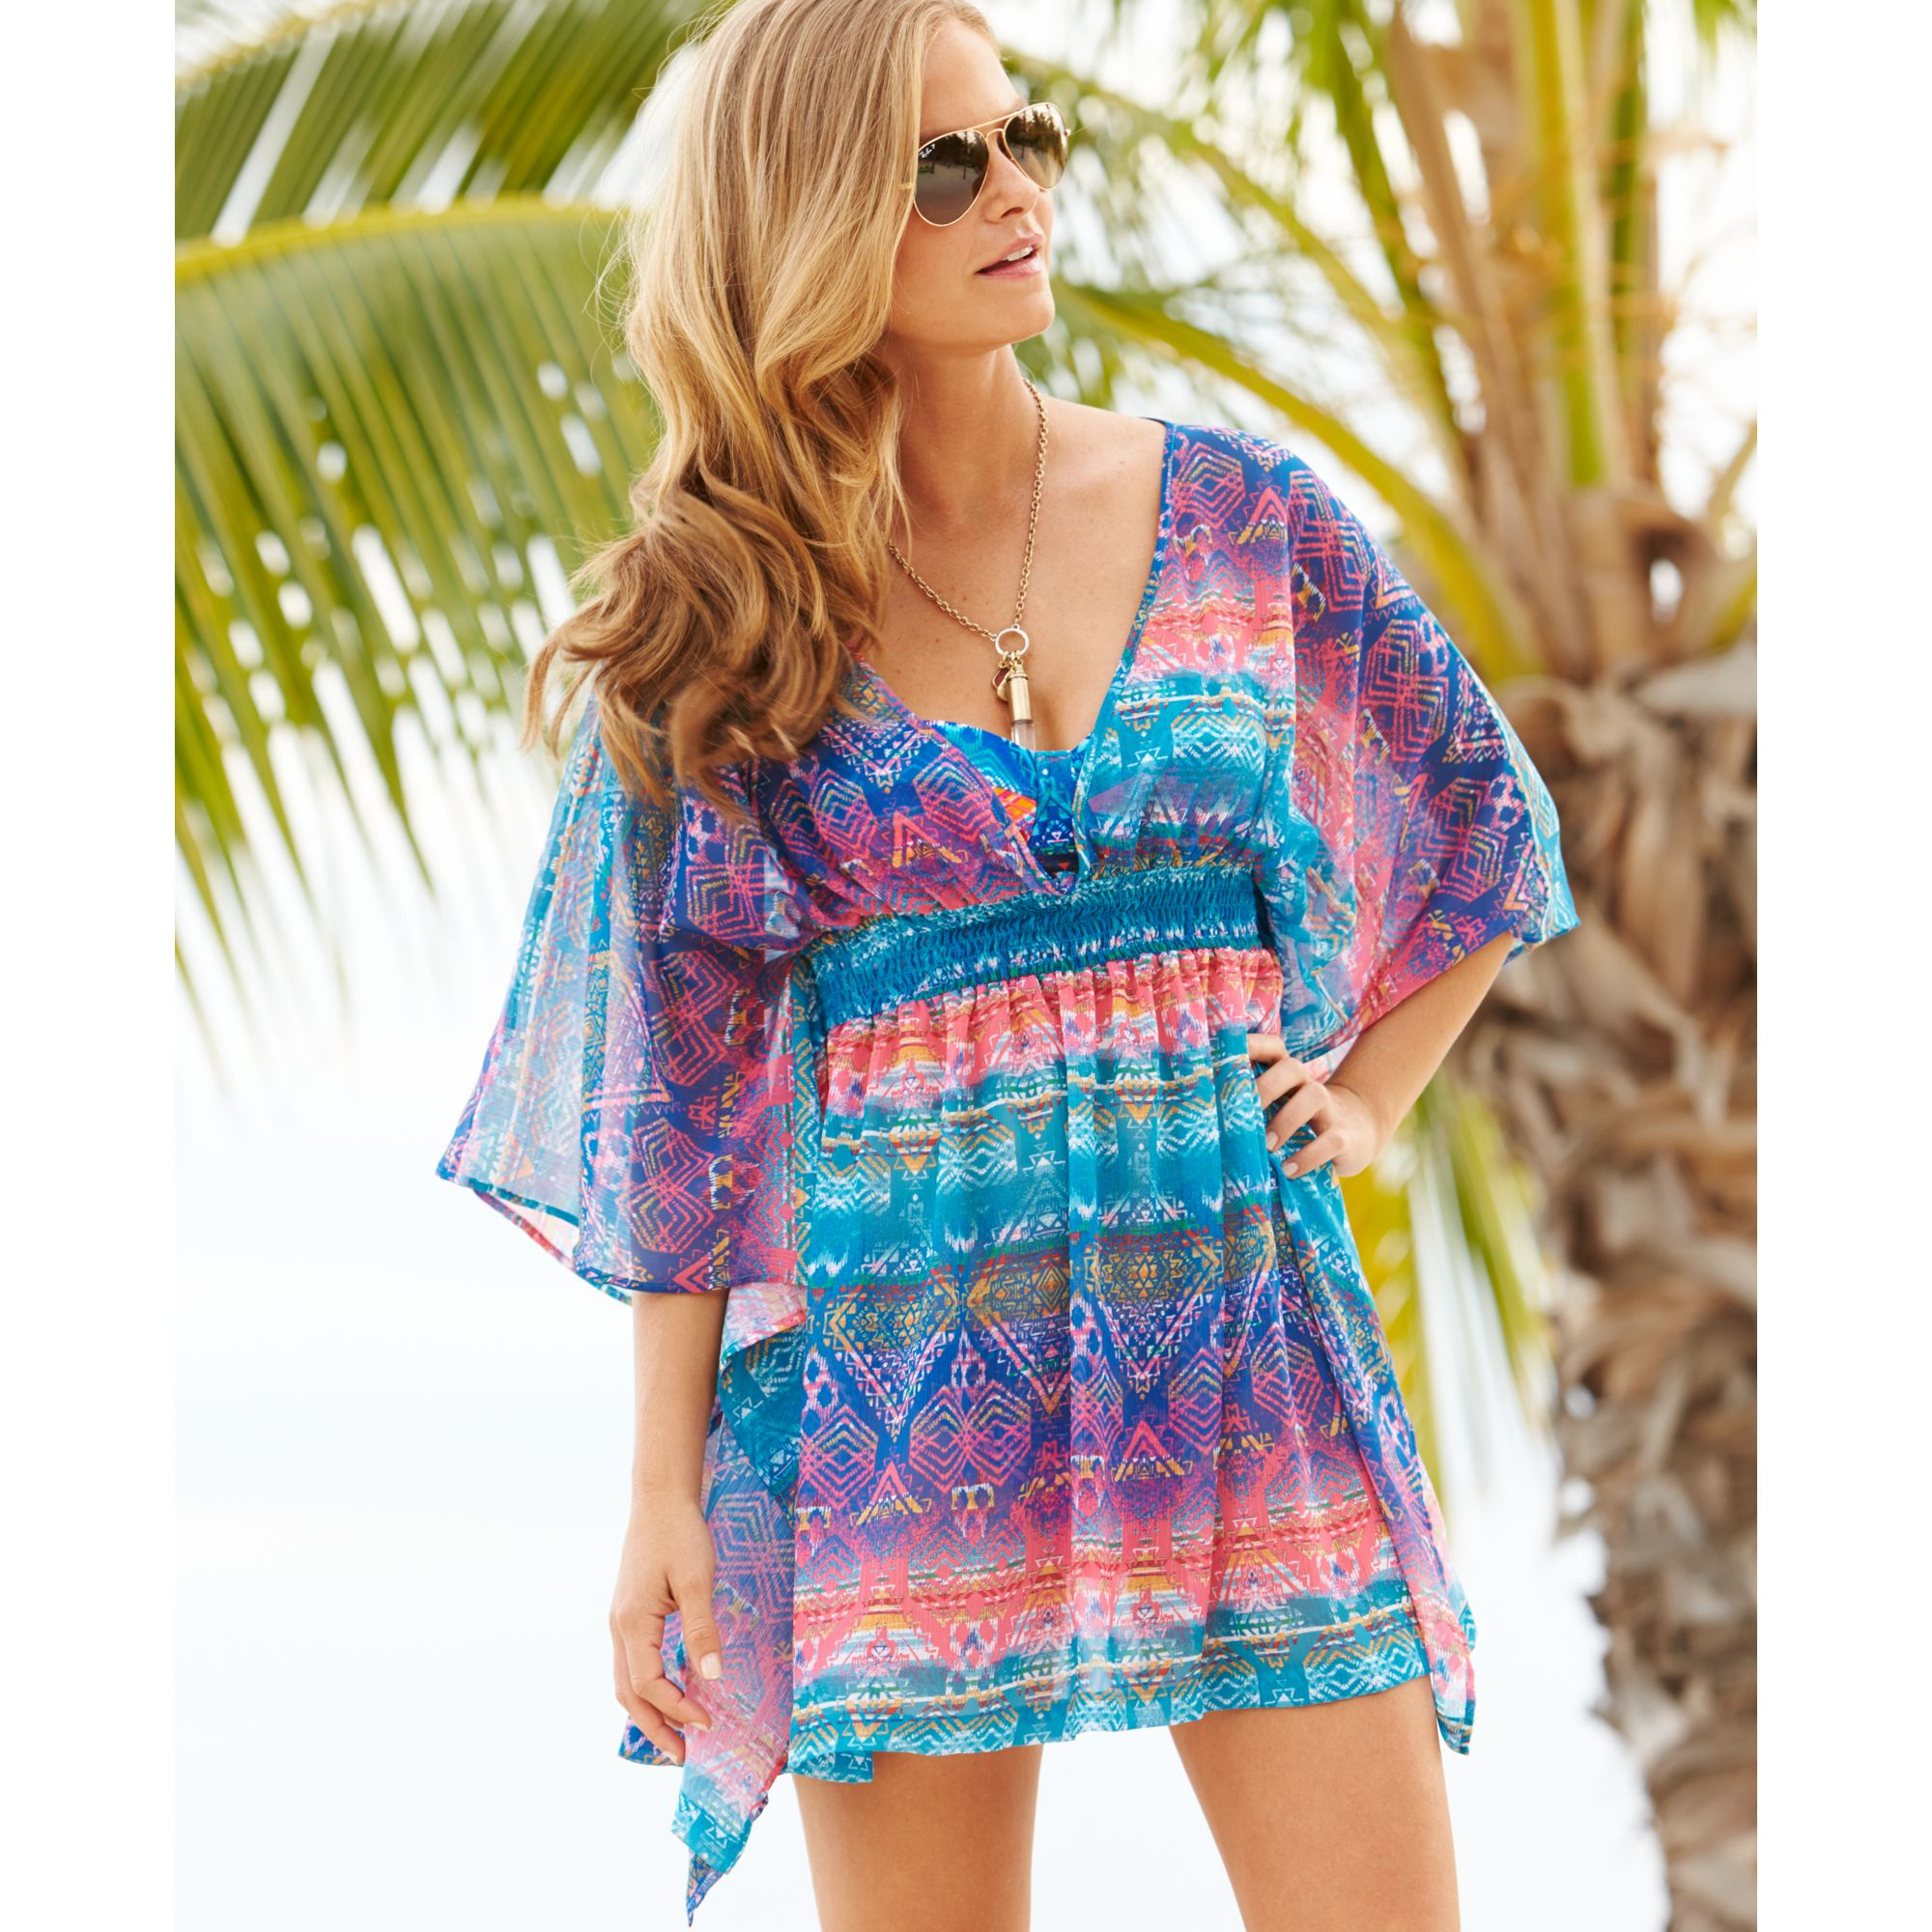 b93bce0569 Lyst - Jessica Simpson Printed Back cut-out Tunic Cover Up in Blue